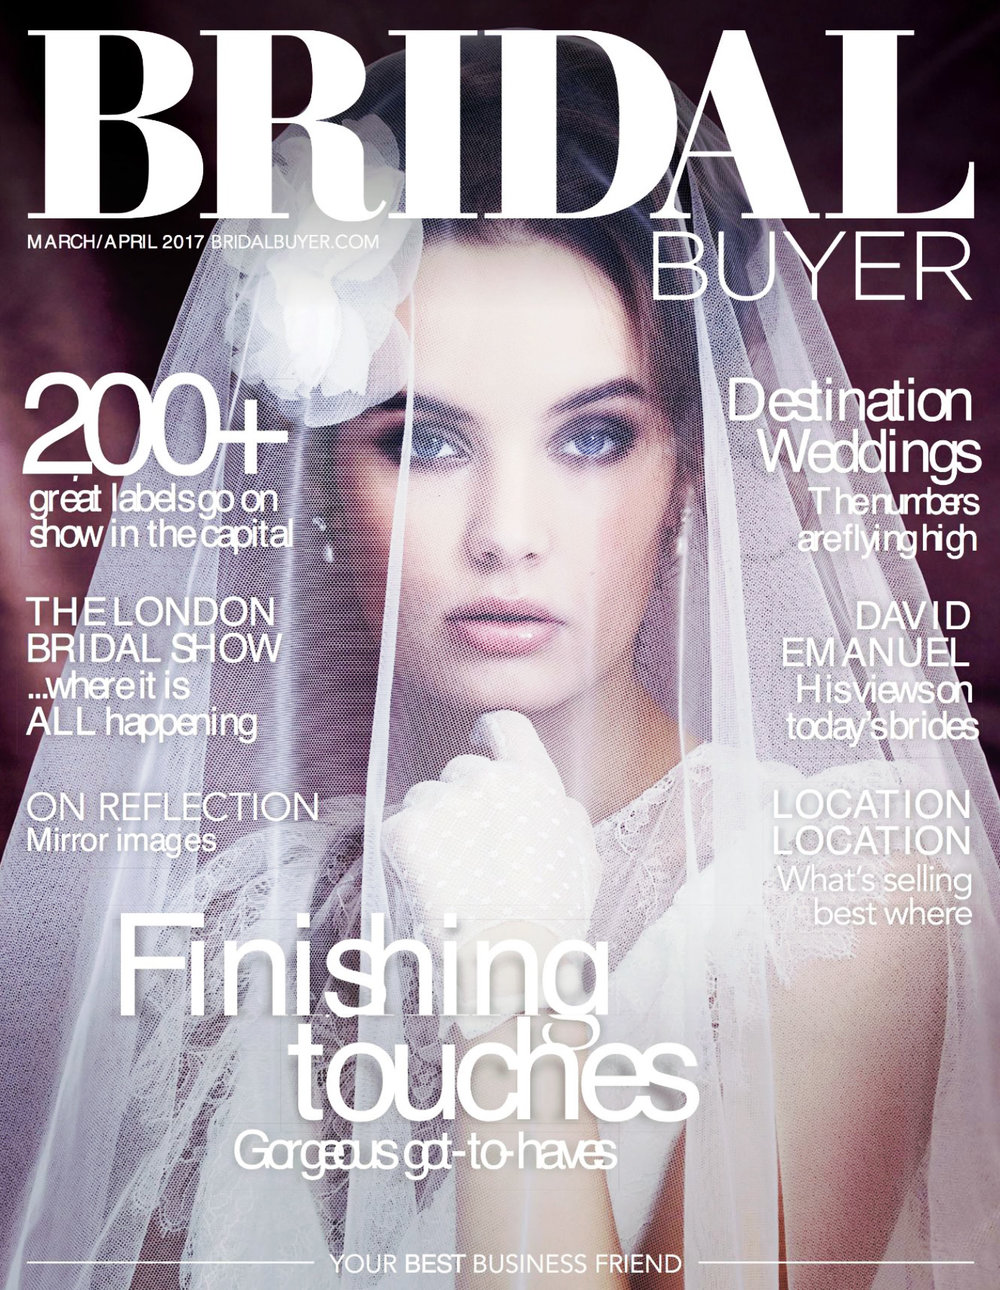 BRIDAL BUYER MAGAZINE